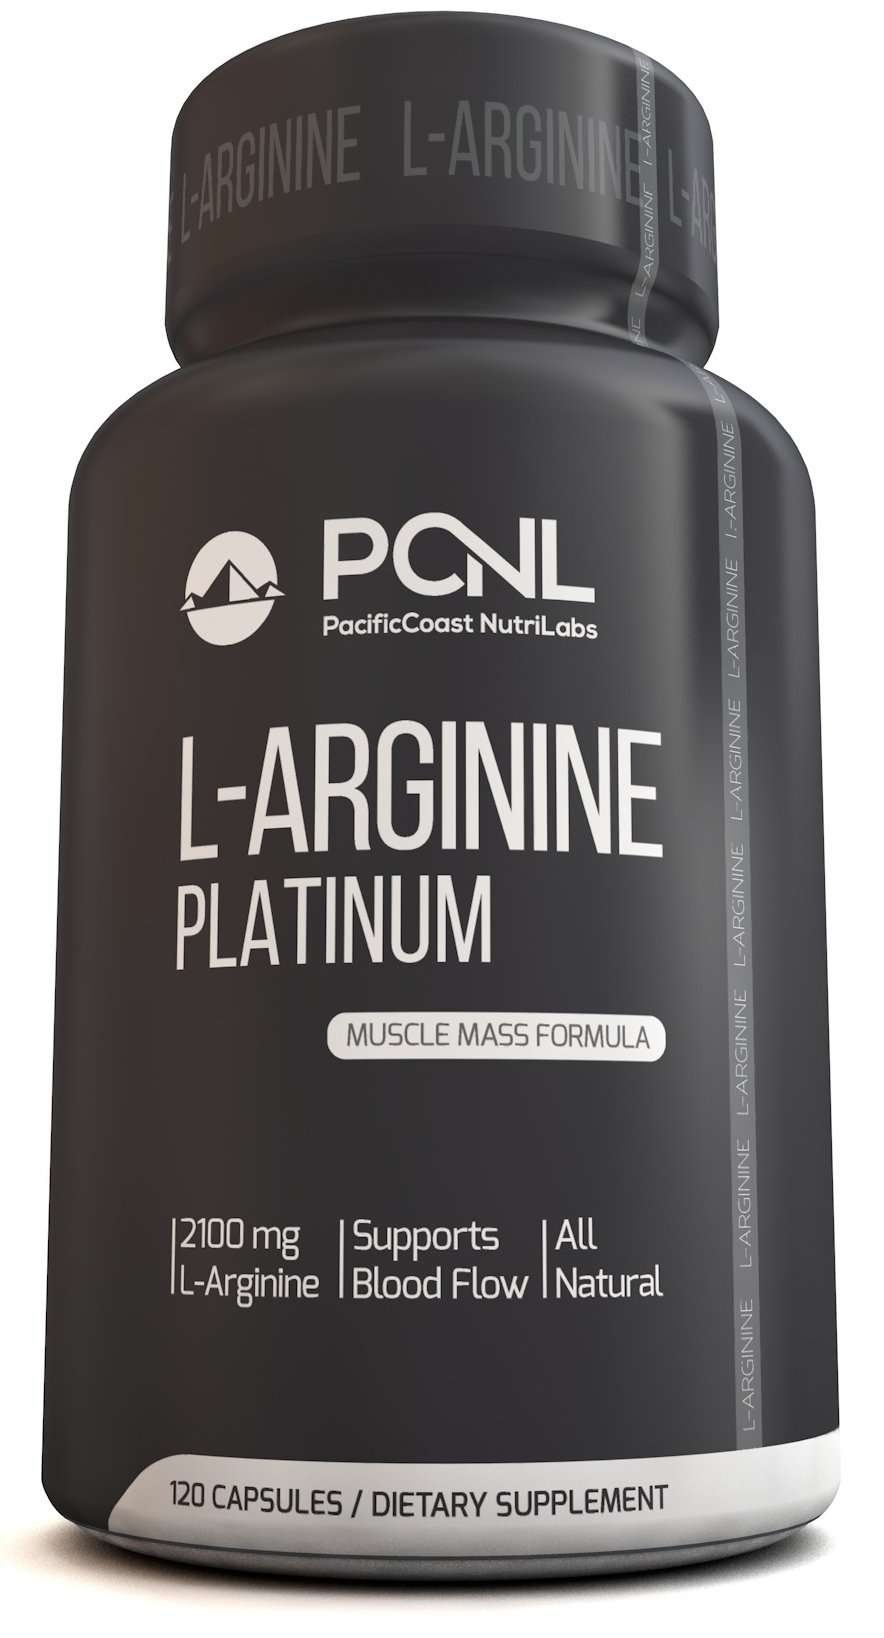 PacificCoast NutriLabs 2100mg L Arginine, All-Natural Muscle Mass Formula, Free Ebook, 120 Capsules by PacificCoast NutriLabs